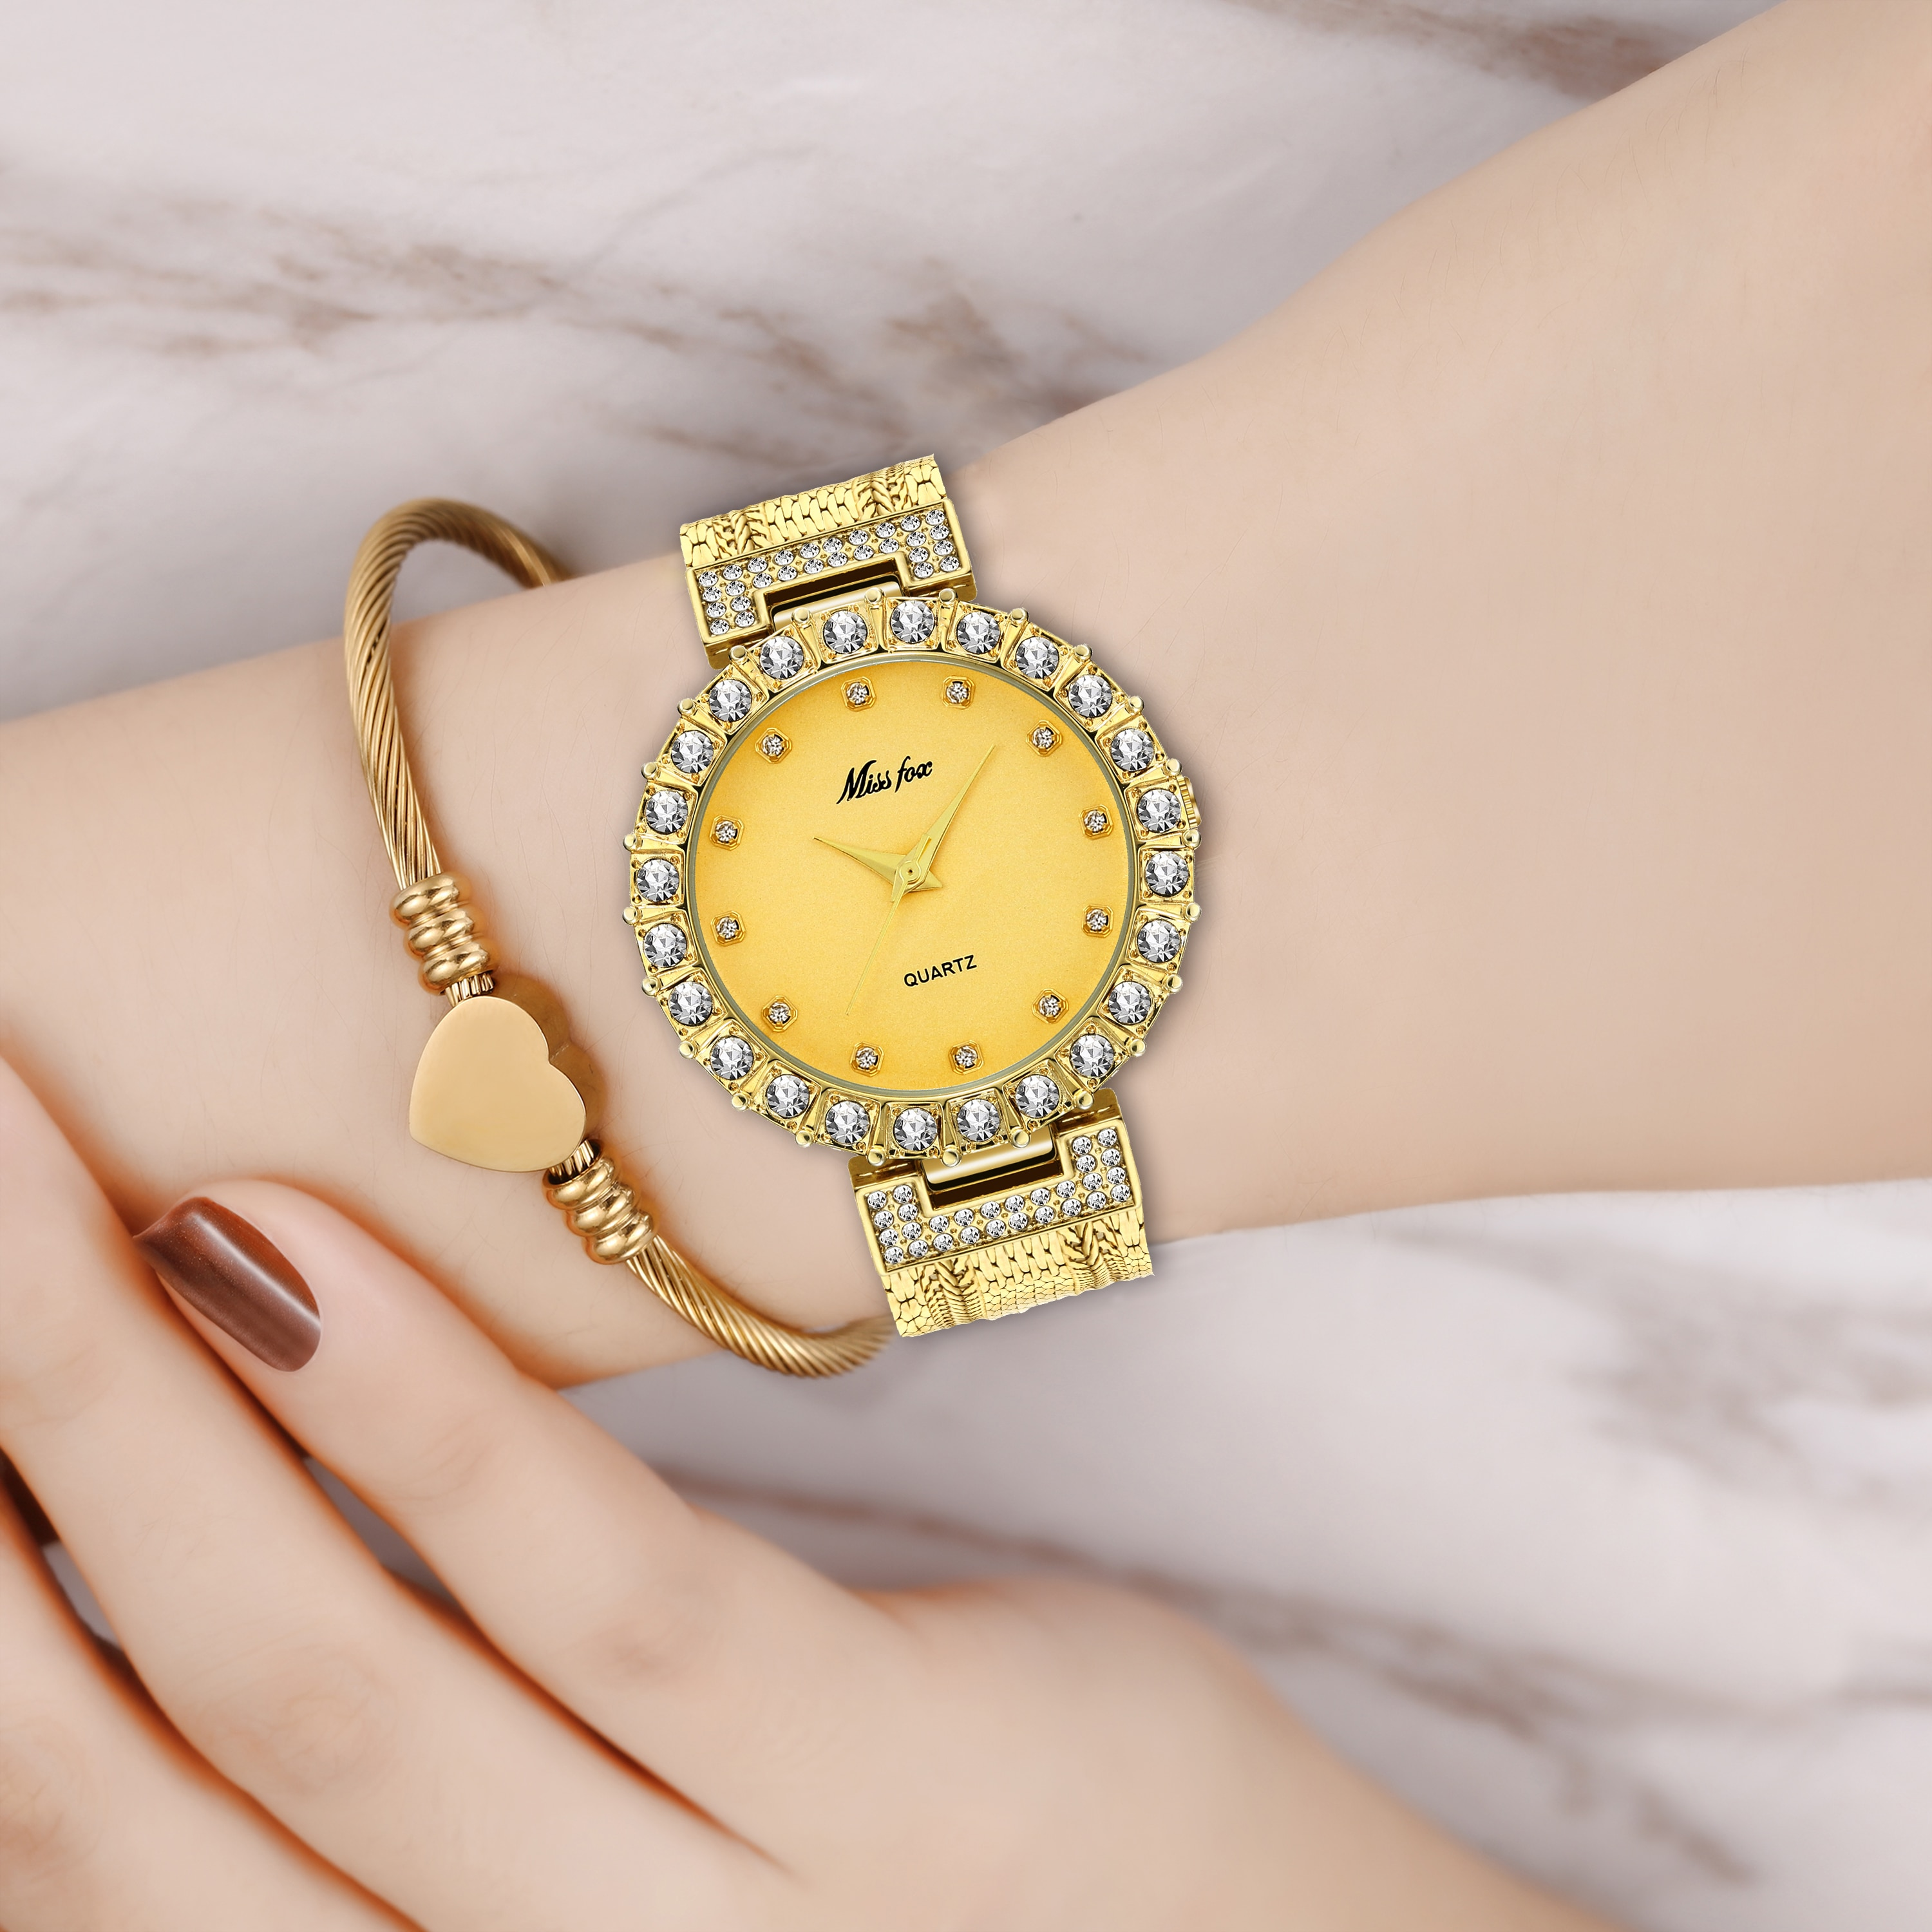 MISSFOX Watch Woman Famous Brand Jewelry Gold Elegant Popular Fashion 2020 Women Watches Waterproof Trending Products Top Women enlarge